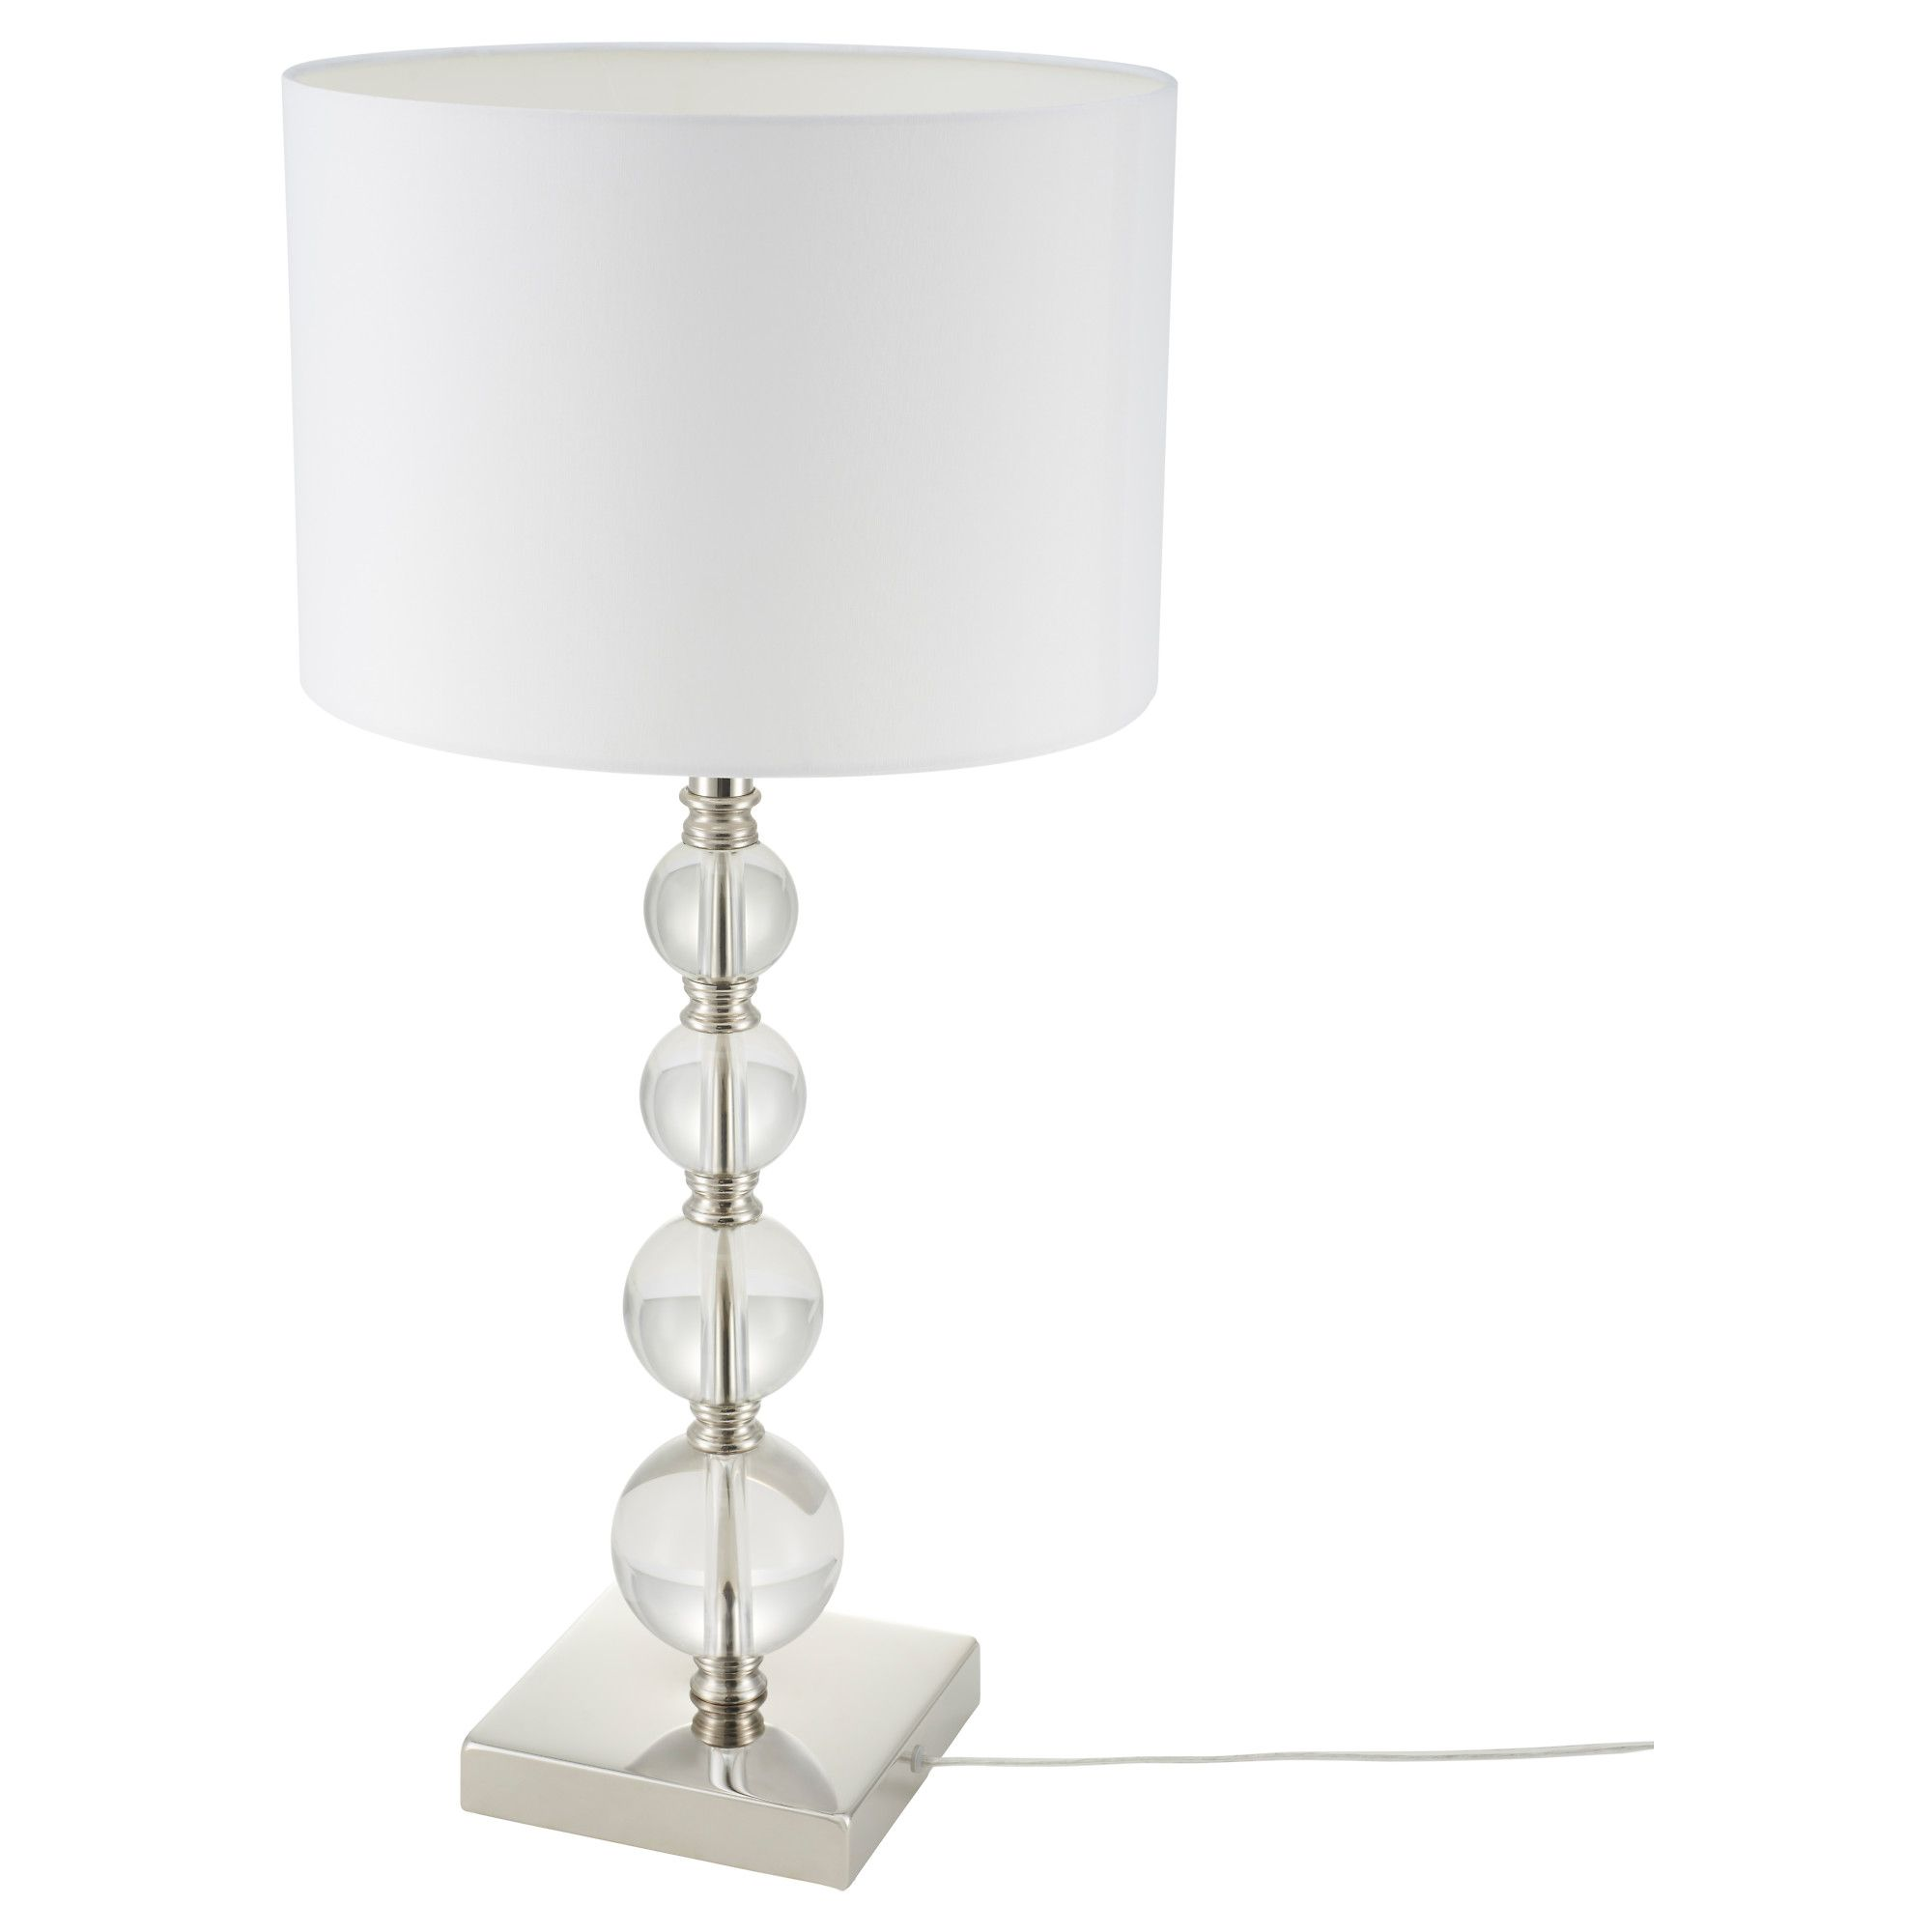 Ikea Us Furniture And Home Furnishings Table Lamp Lamp Ikea Table Lamp